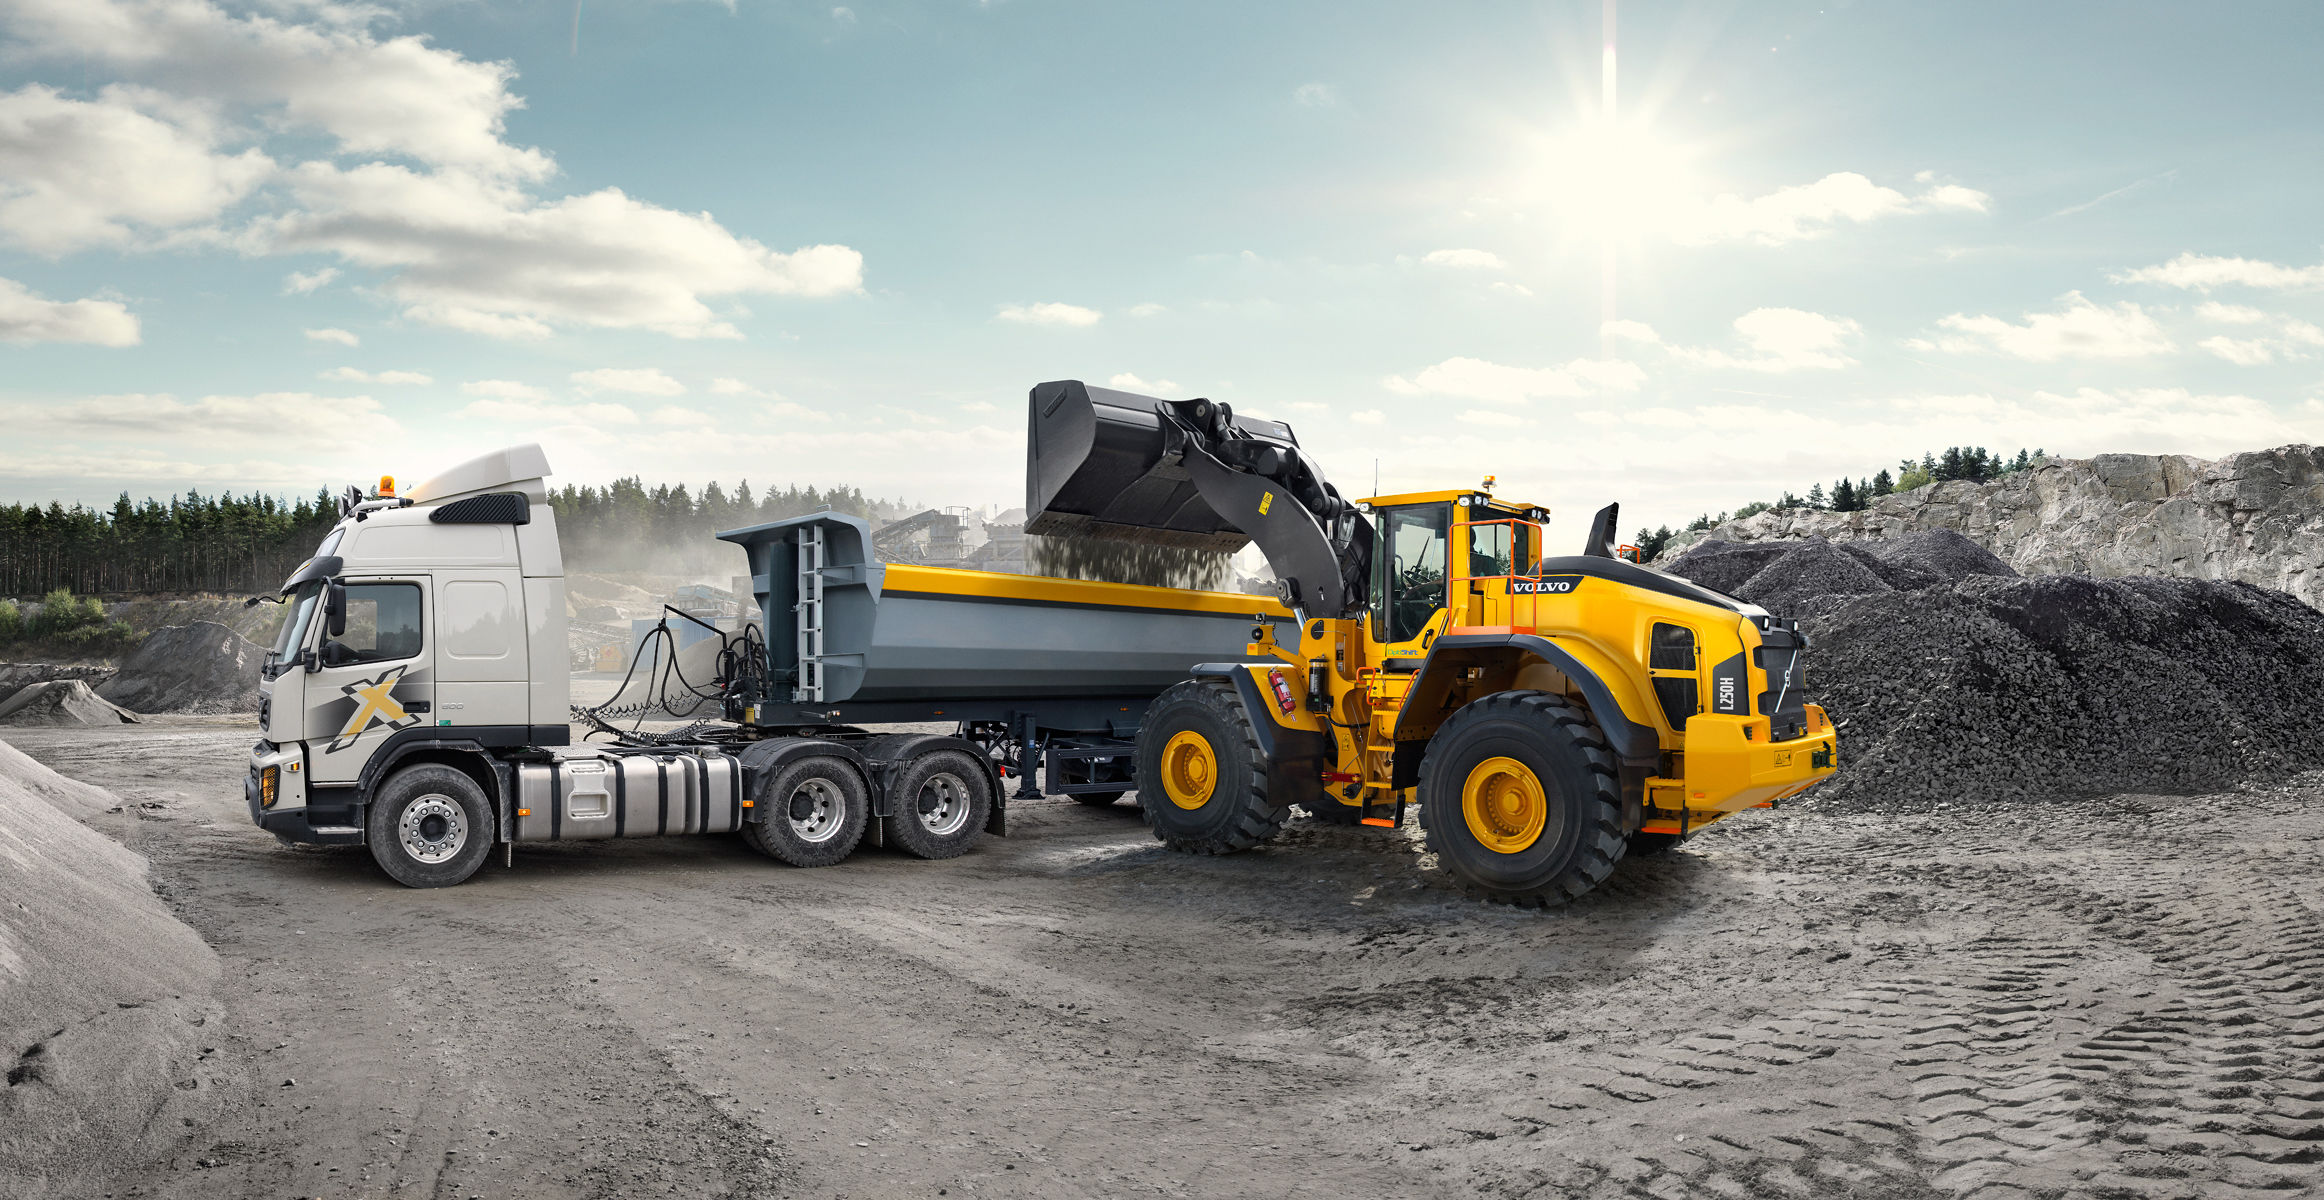 L250H   Large Wheel Loaders   Overview   Volvo Construction Equipment